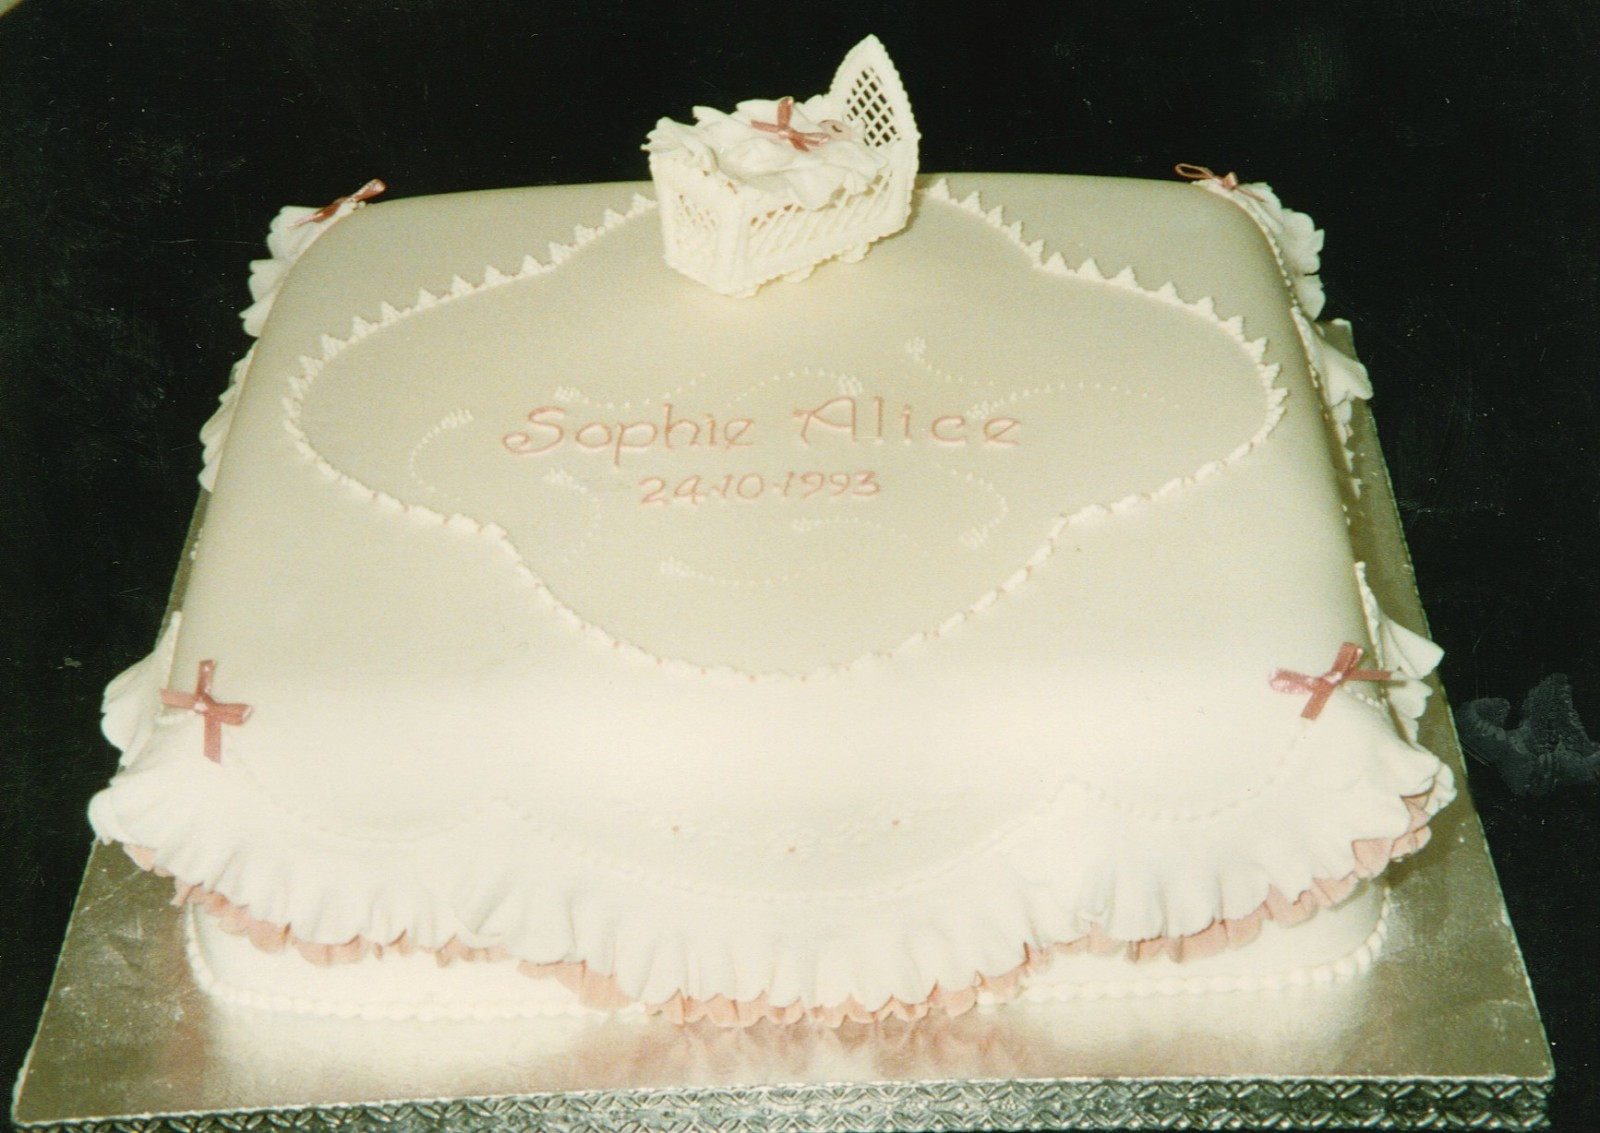 Square Christening Cake Images : Square Christening Cake With Cradle   Susie s Cakes